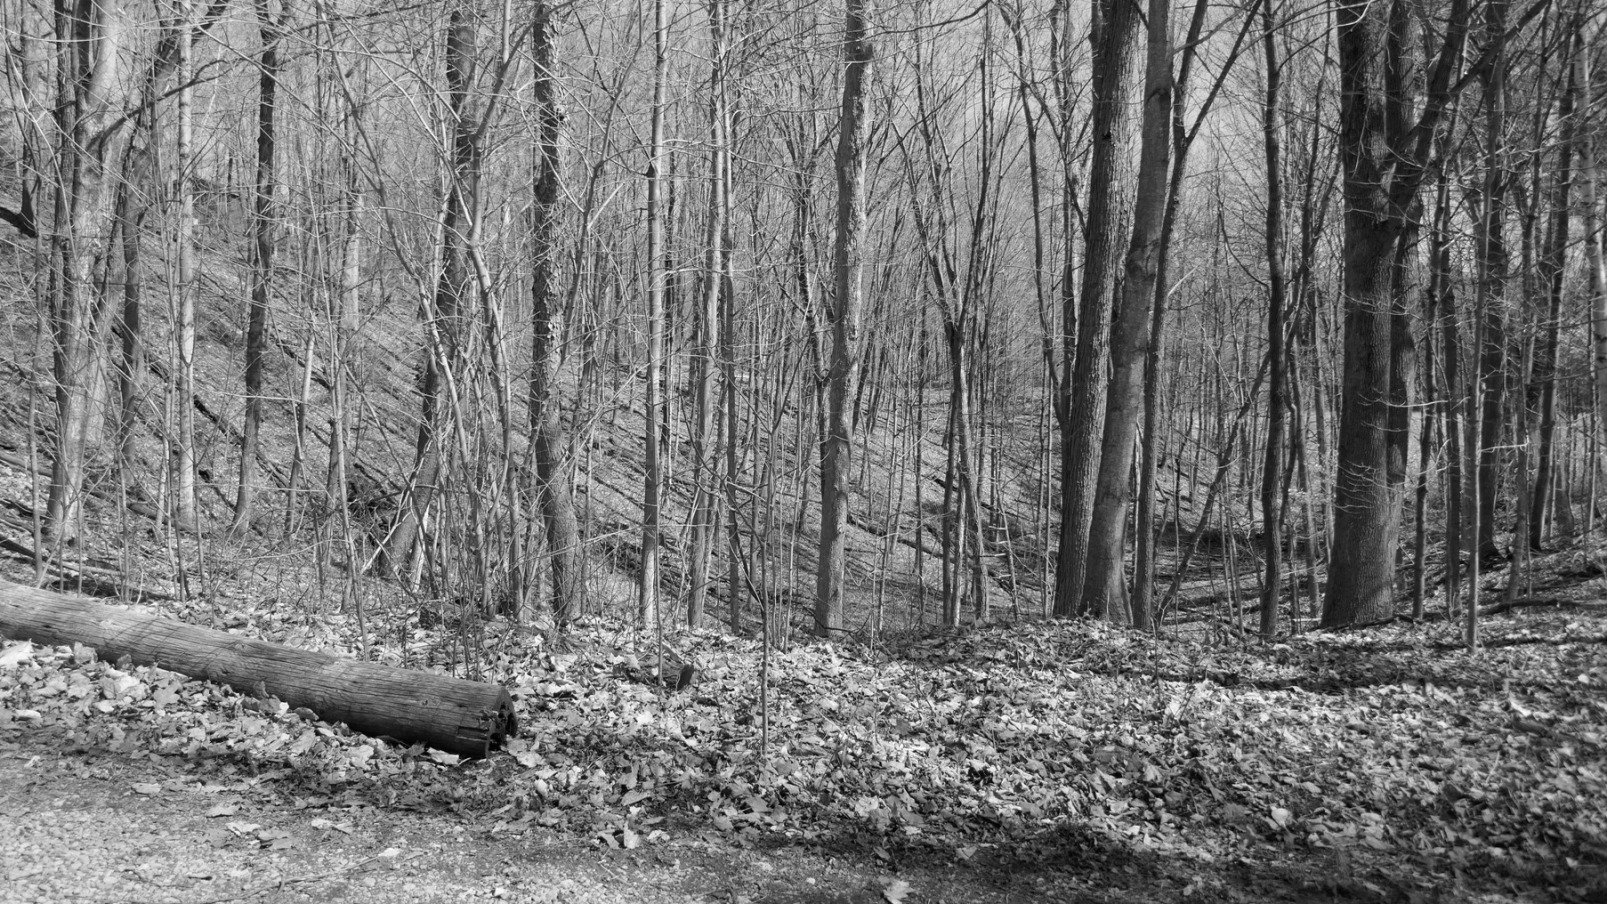 Early Spring in the Countryside Near Jackson's Falls, Prince Edward County, Ontario